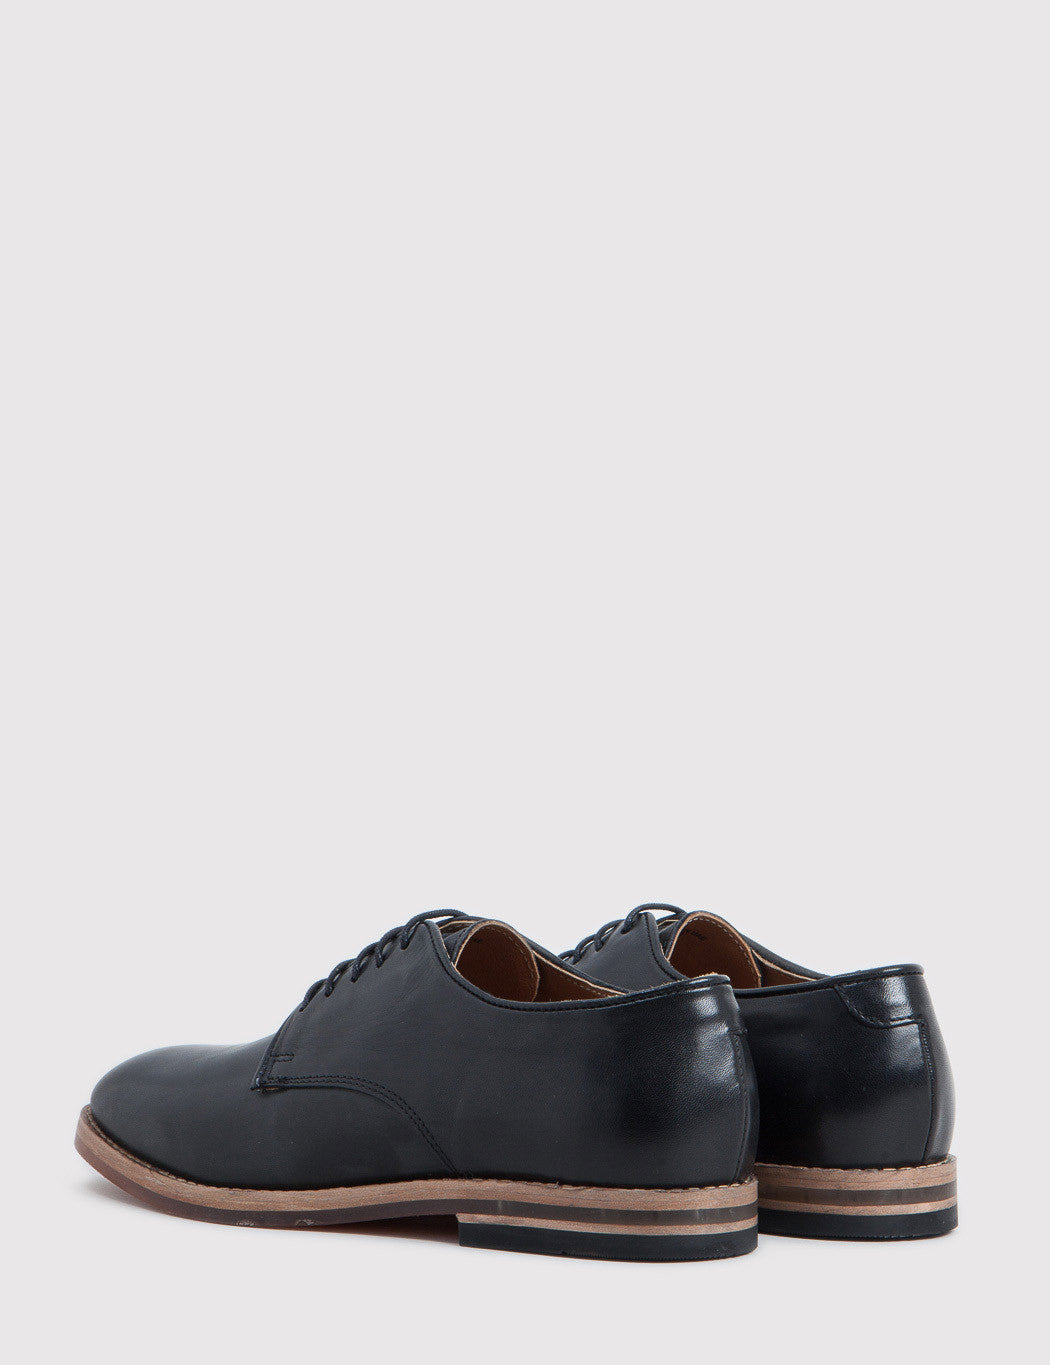 Hudson Hadstone Calf Leather Shoes - Black